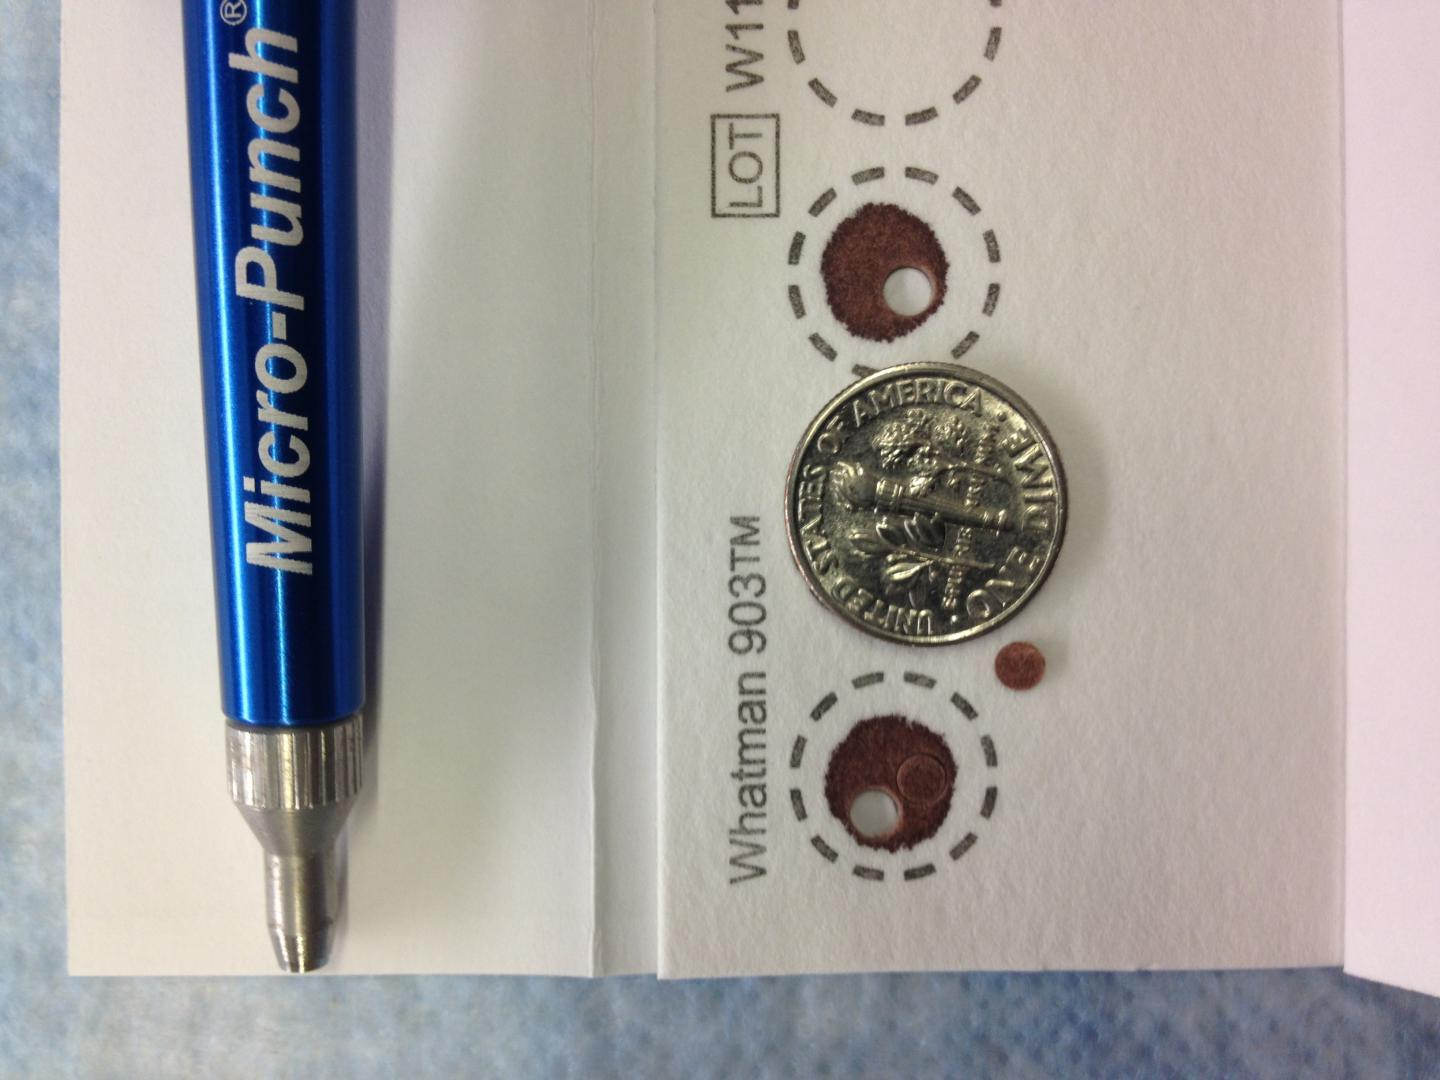 A 3mm Punch is Taken from a Dried Blood Spot and Sent to the Lab to Assess PrEP Drug Levels